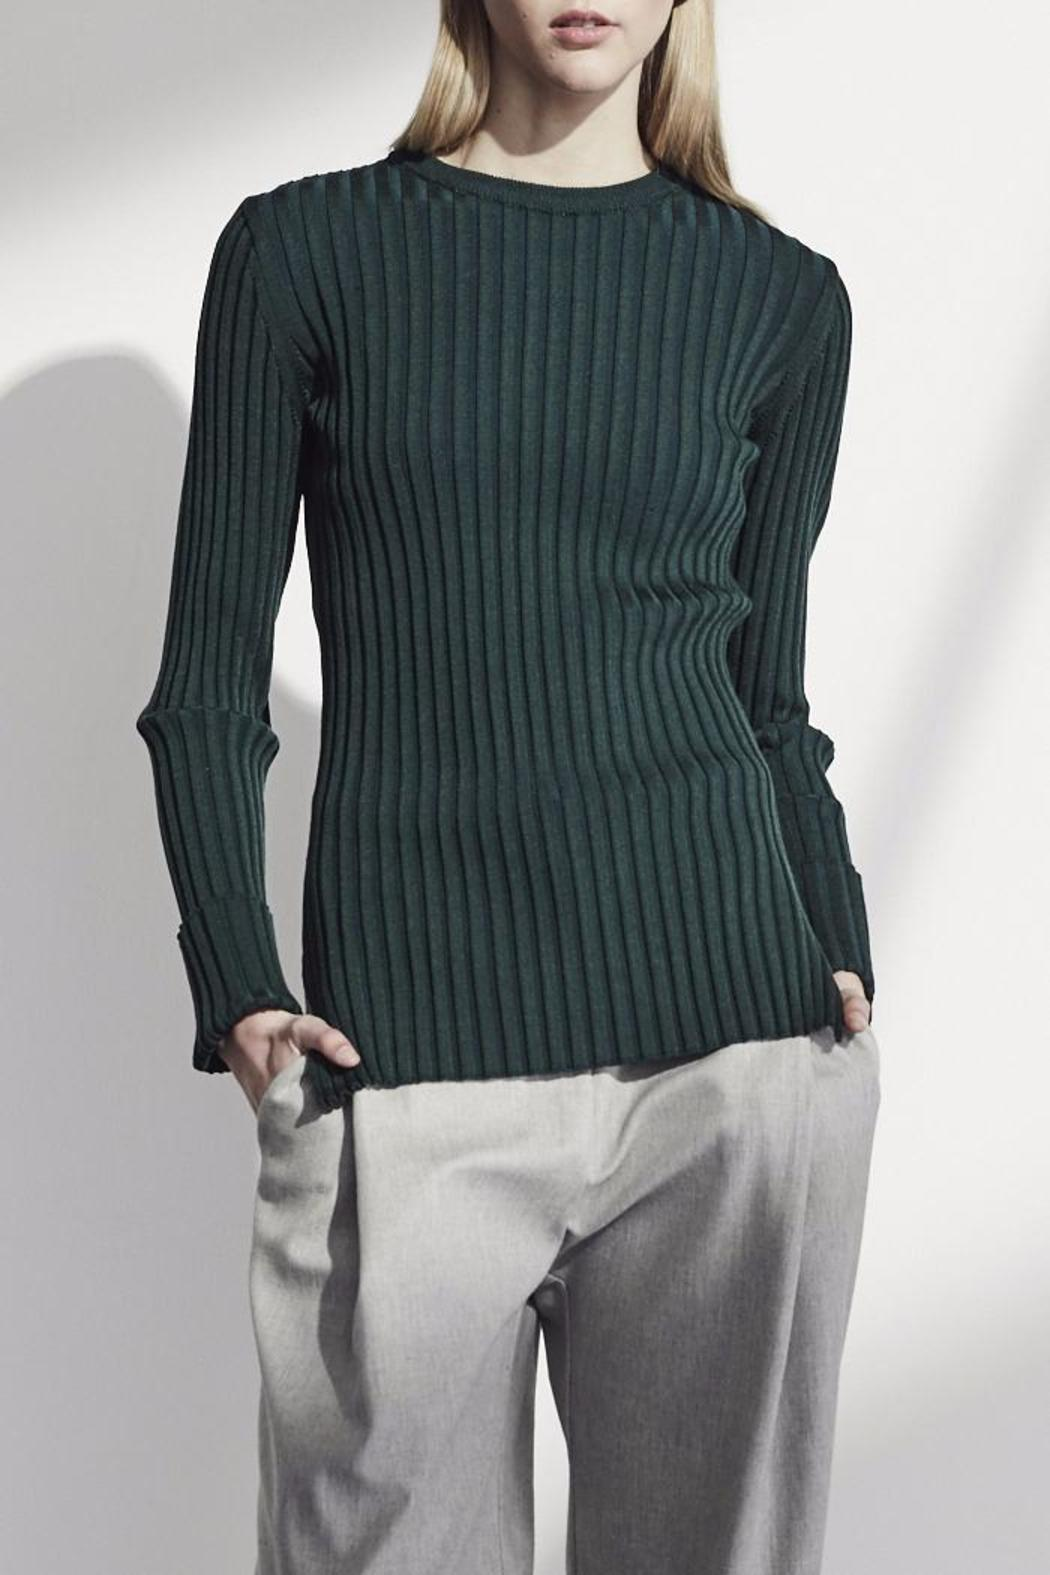 Achro Green Ribbed Sweater from Iowa City by Sicily Boutique ...